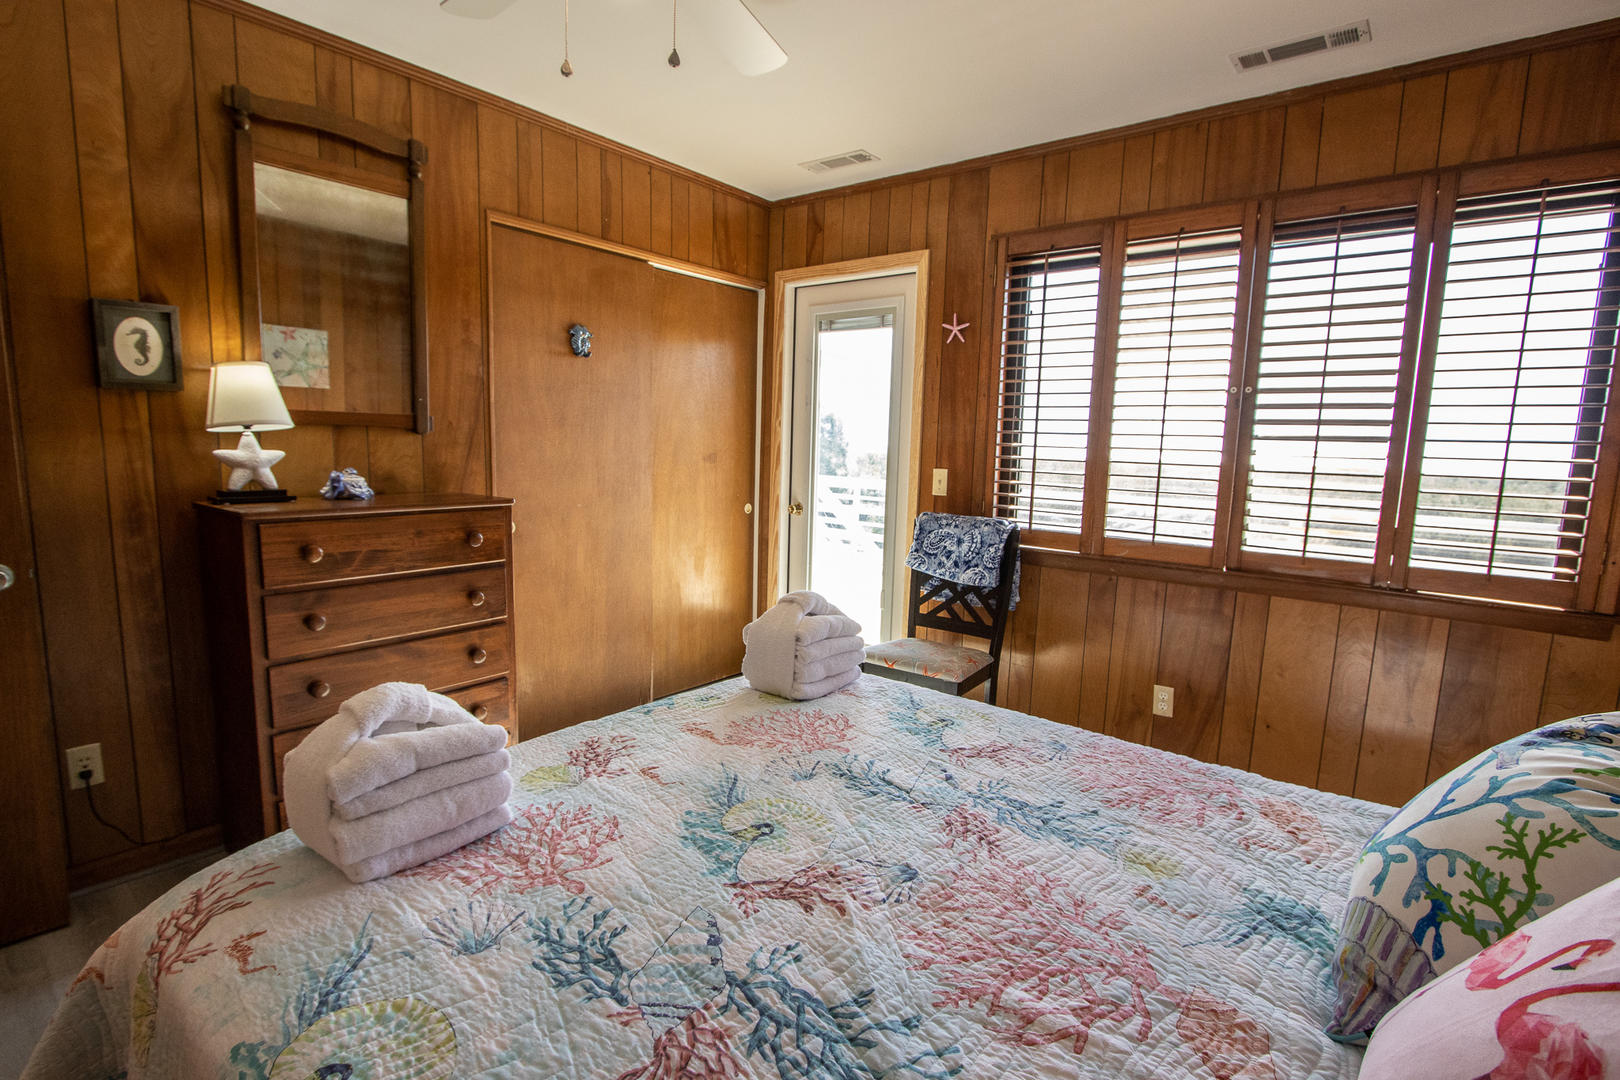 Bedroom 2, access to back deck